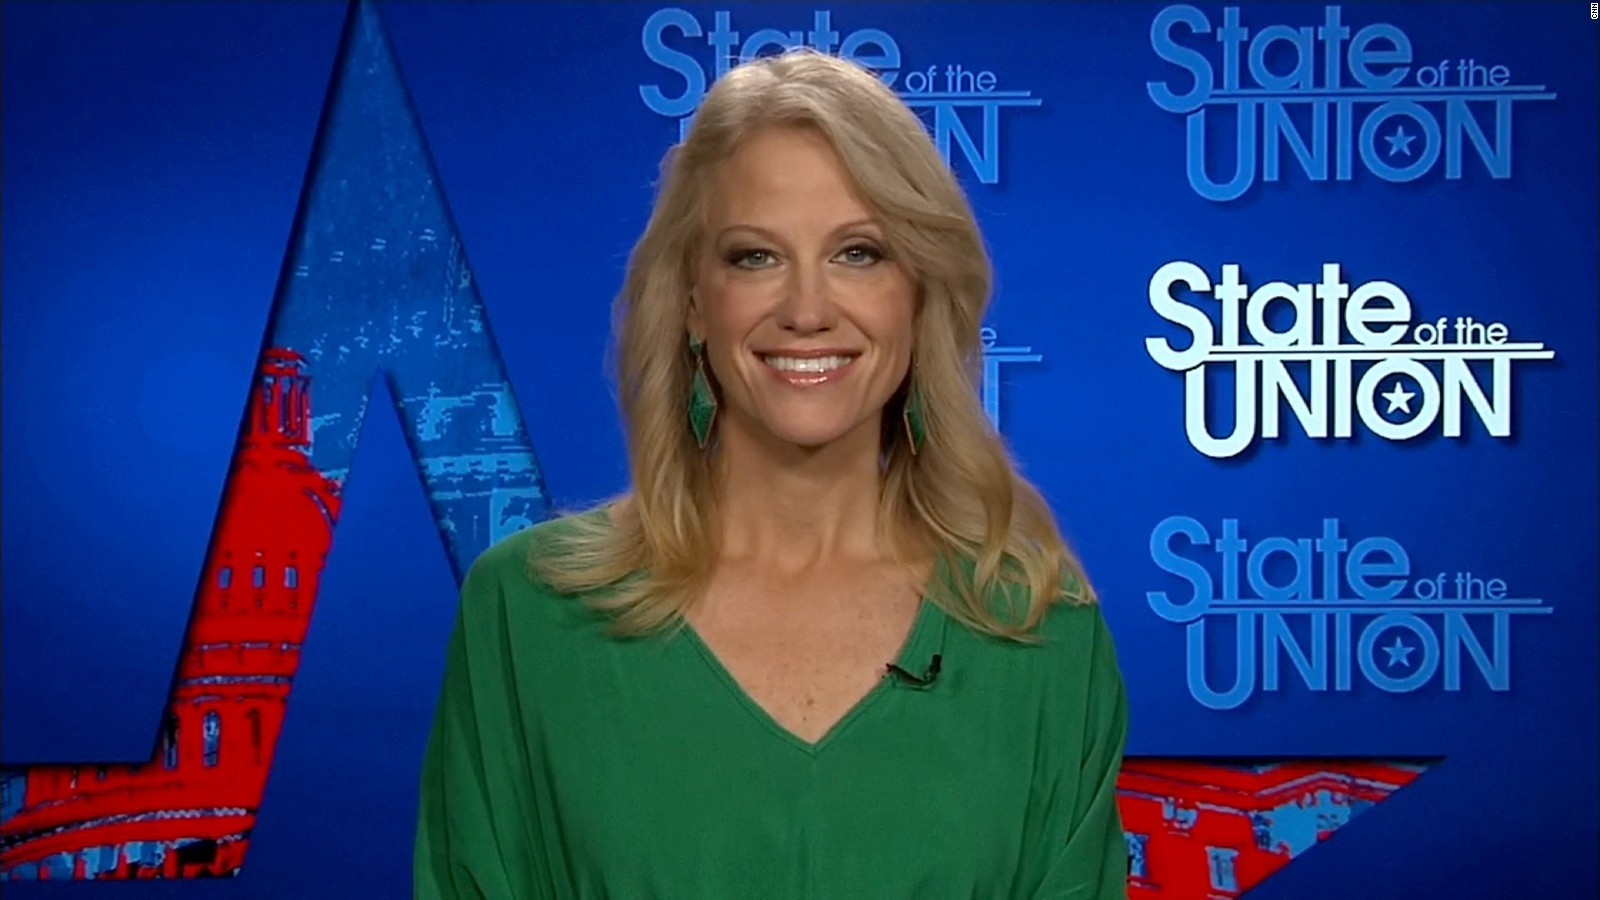 conway excuses assassination attempt retweet